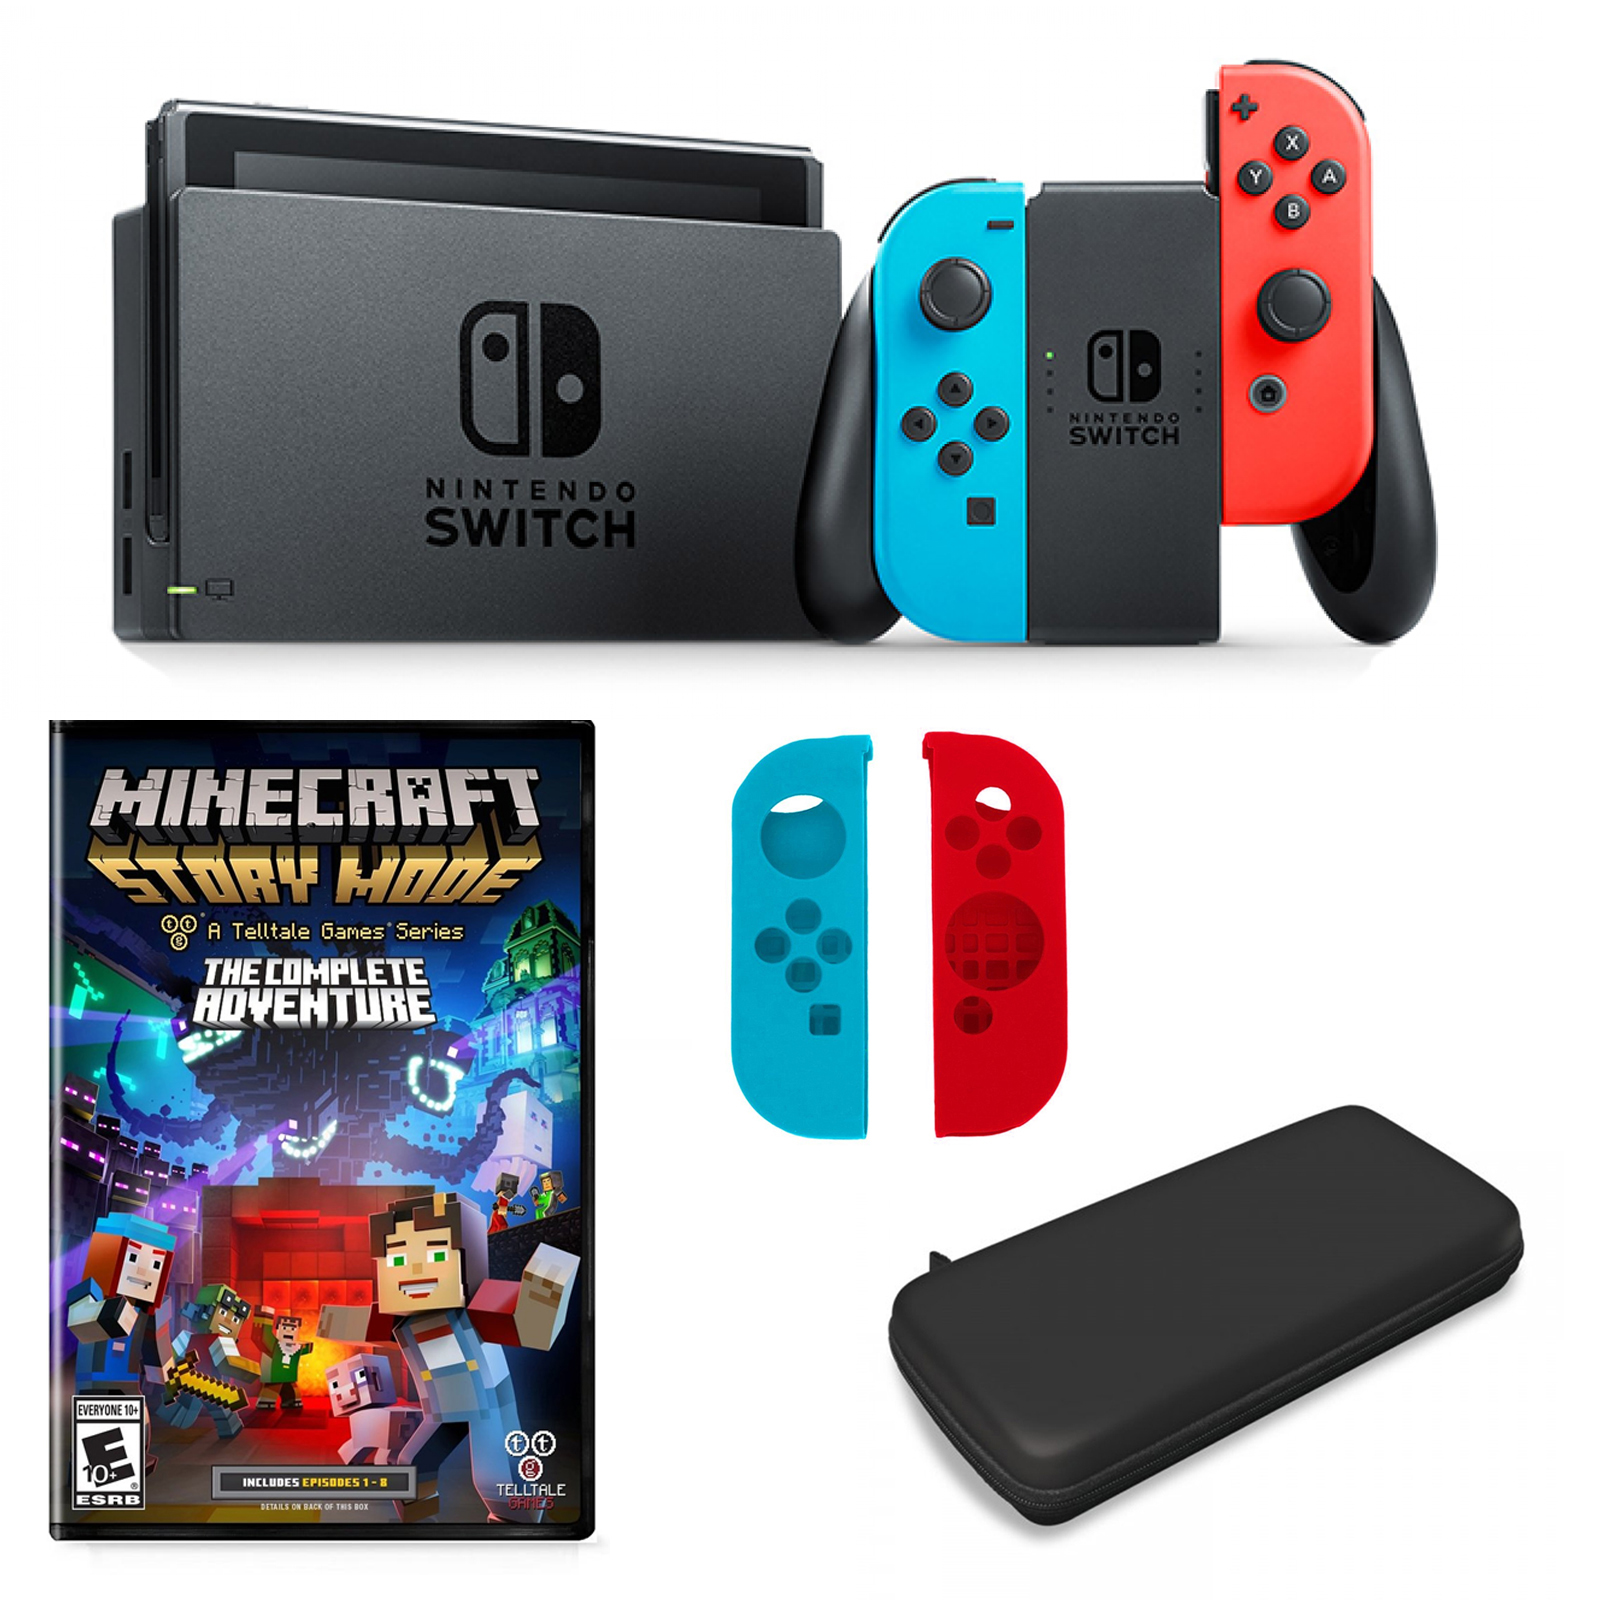 Nintendo Switch in Neon with Minecraft Adventure Game and Accessories